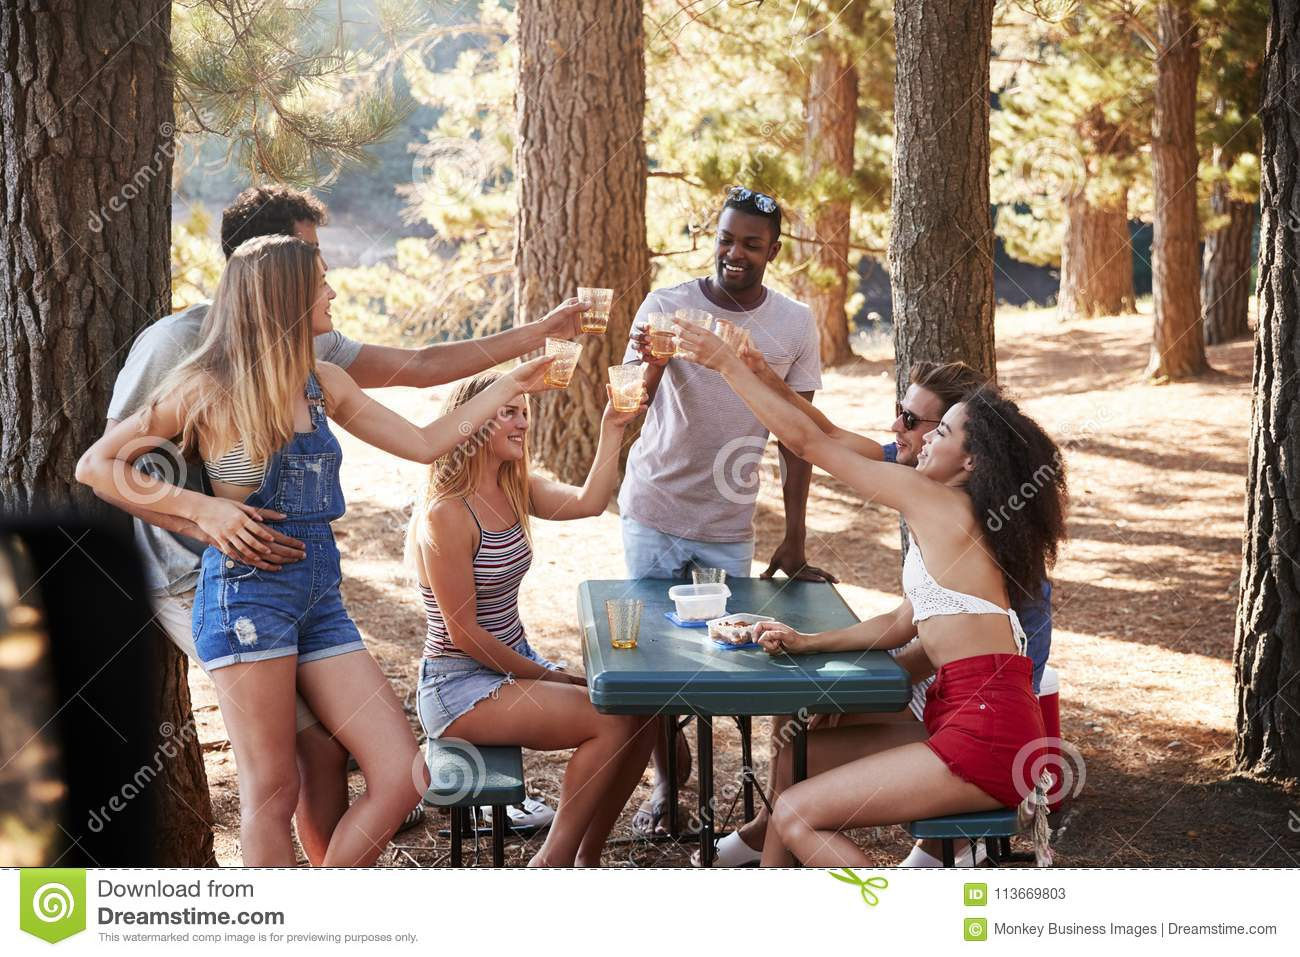 Group of adult friends hanging out by a lake making a toast